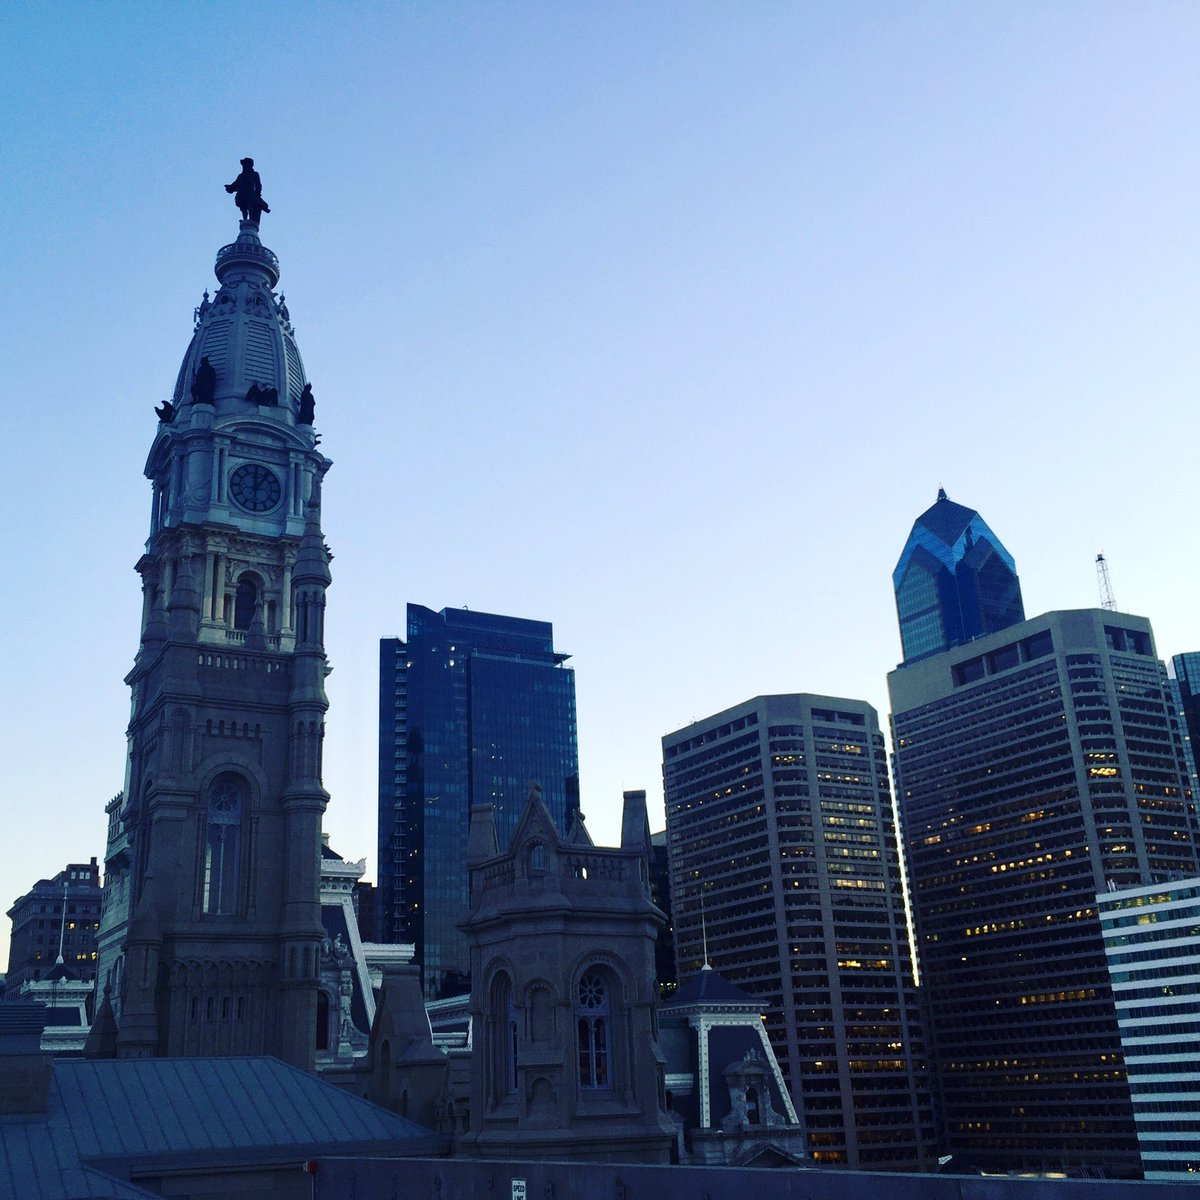 PA Convention Center Skyline. Phila, Pa.  #GLOBALCON #conventioncenter #aee #energy #buildings #commissioning #philly<br>http://pic.twitter.com/tbJEhBnDV4